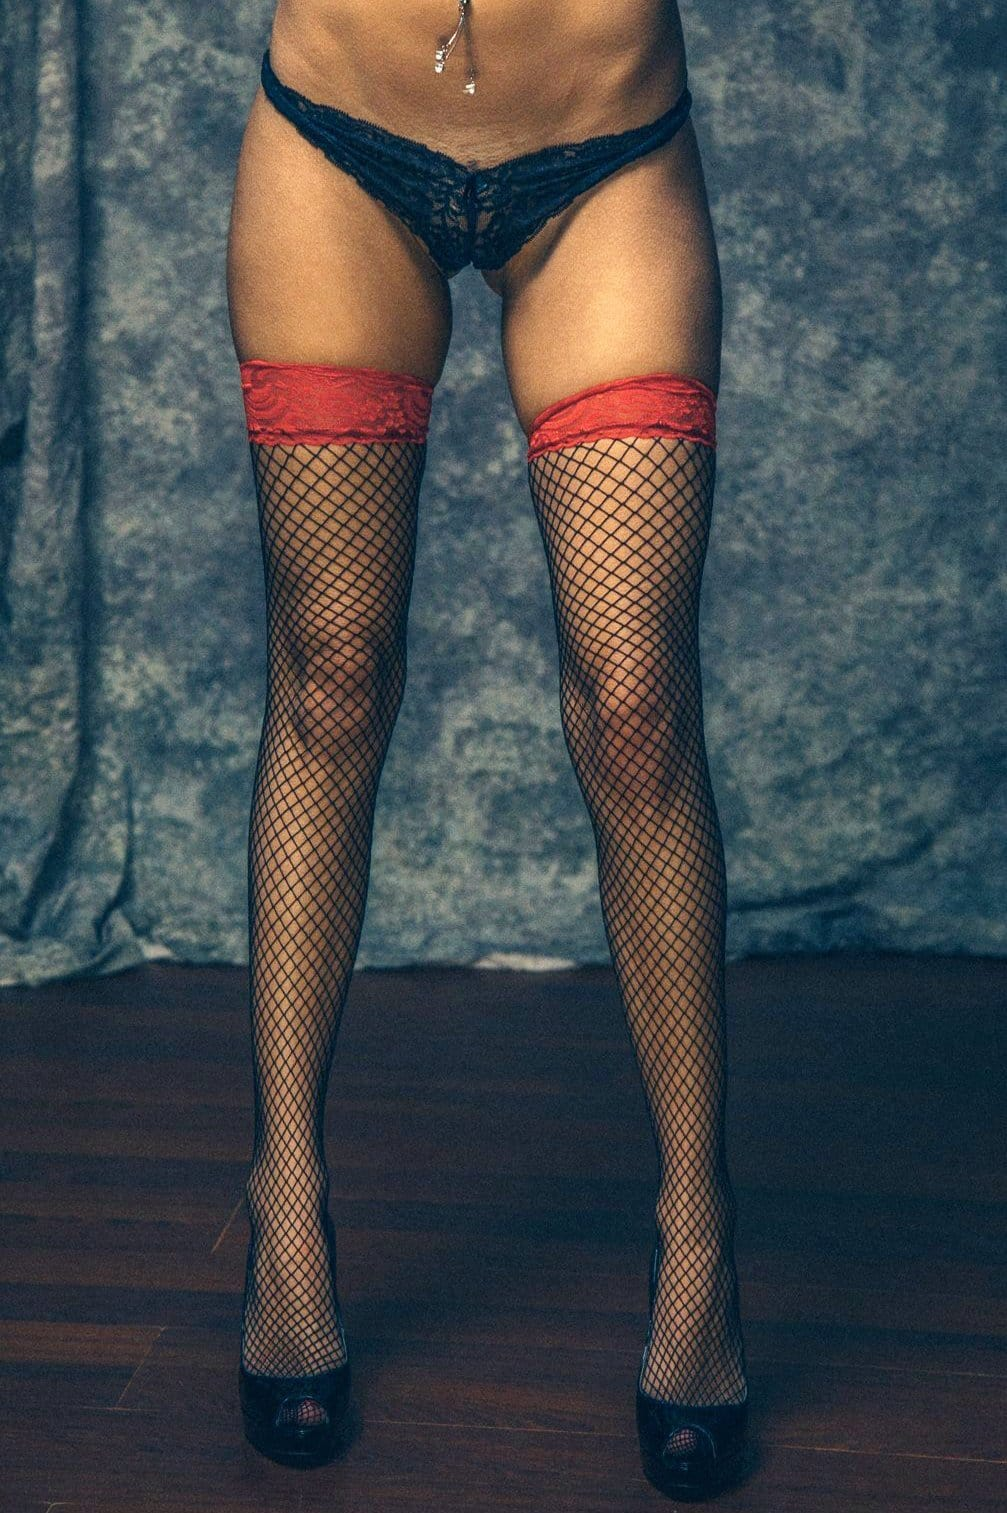 Black fishnet thigh highs sock / stockings with red elastic tops - Cali Diamond